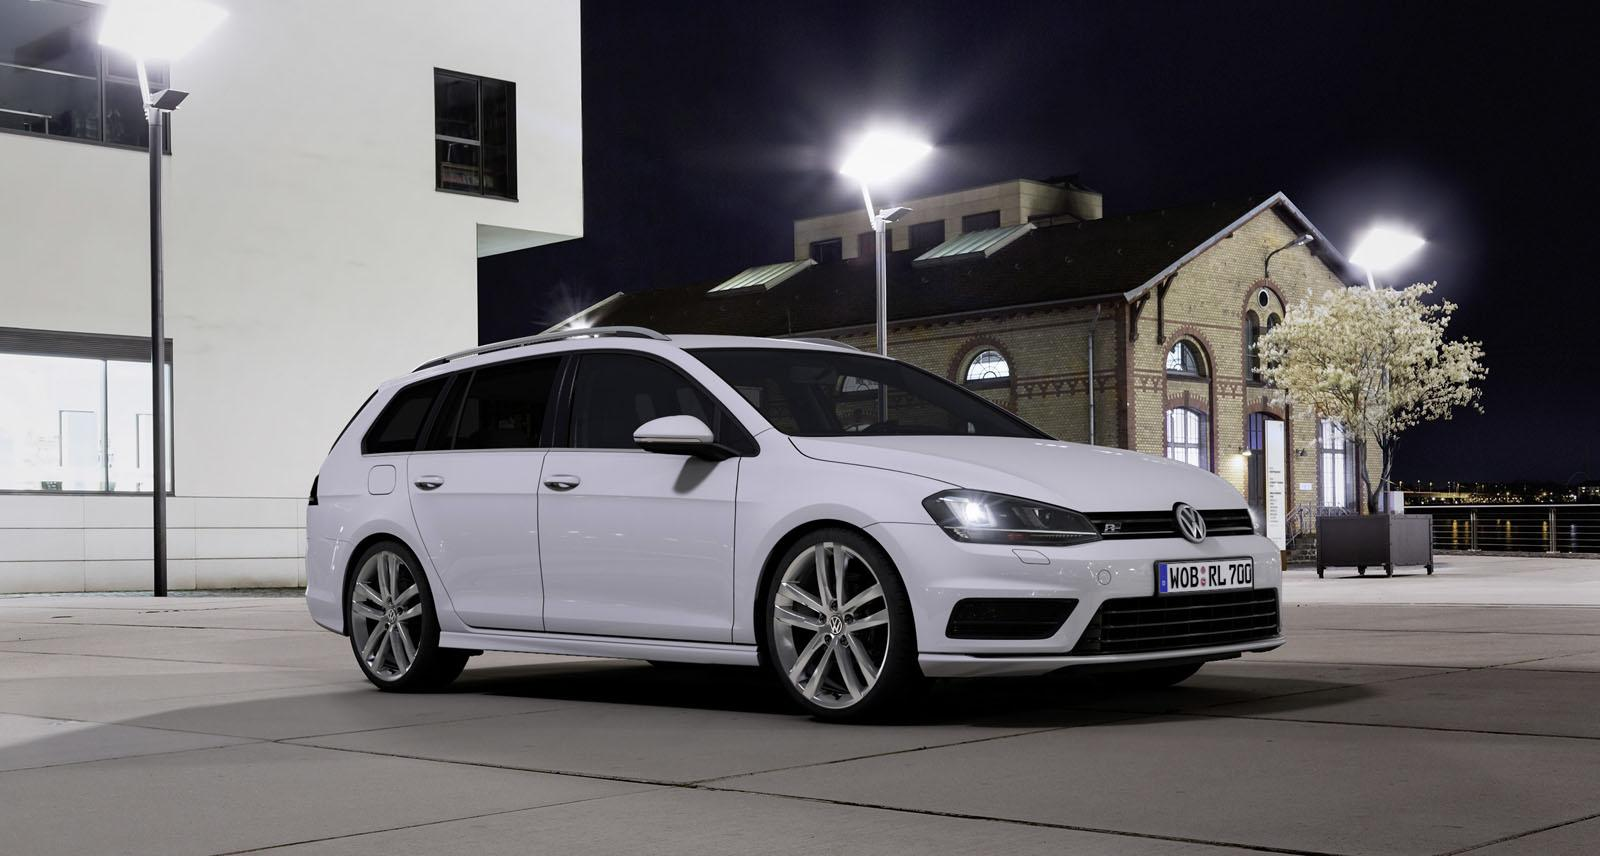 Black Golf R >> Volkswagen Golf Variant and Scirocco Updated with R-Line Packages - autoevolution